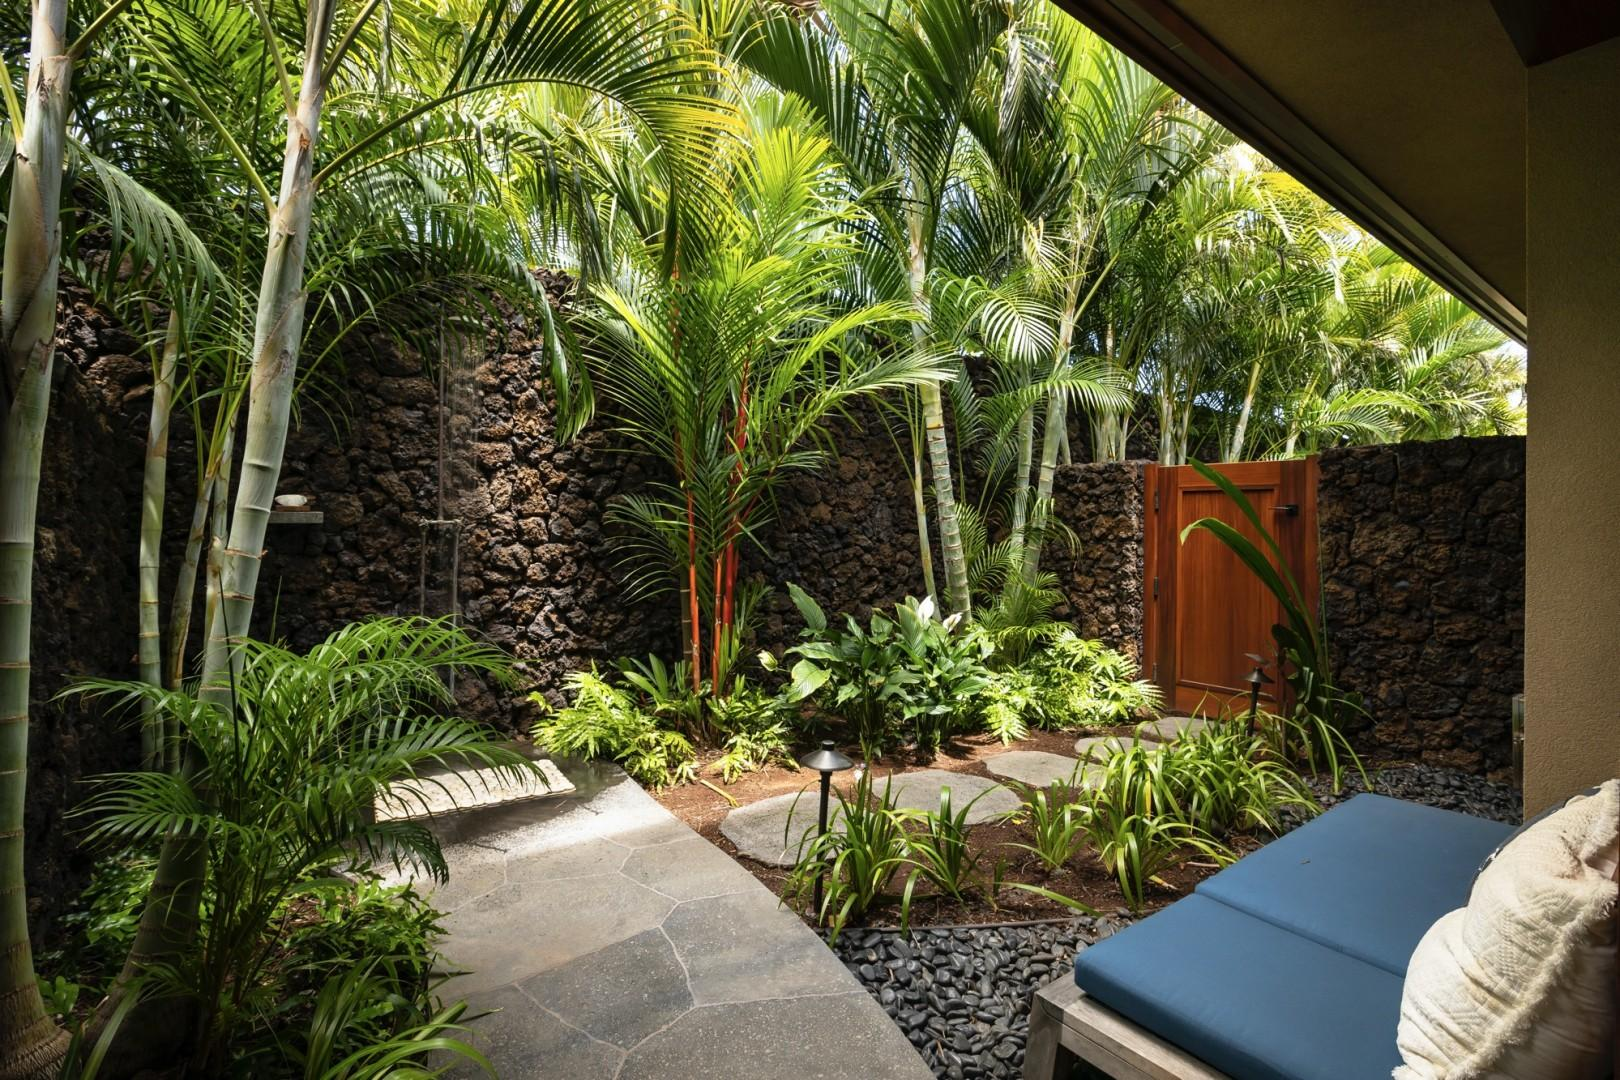 Gorgeous and generous outdoor shower garden - a truly tropical treat!